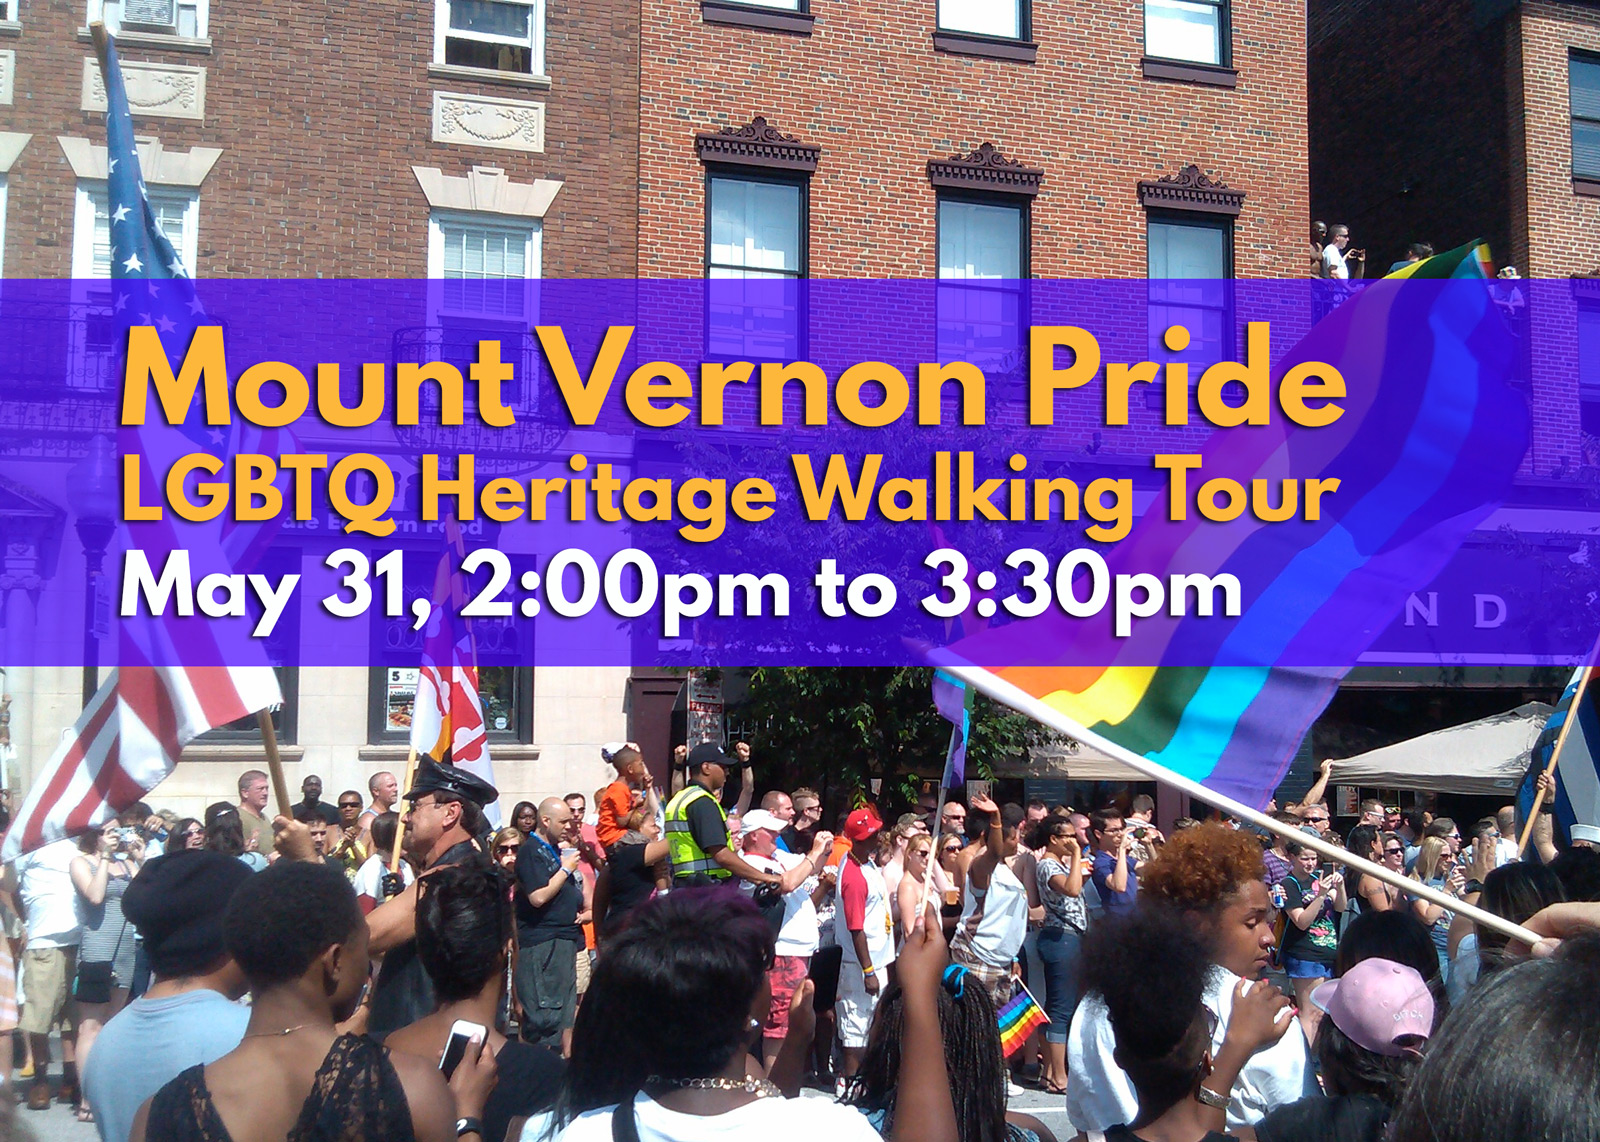 Gay lesbian bisexual and transgender community center of baltimore